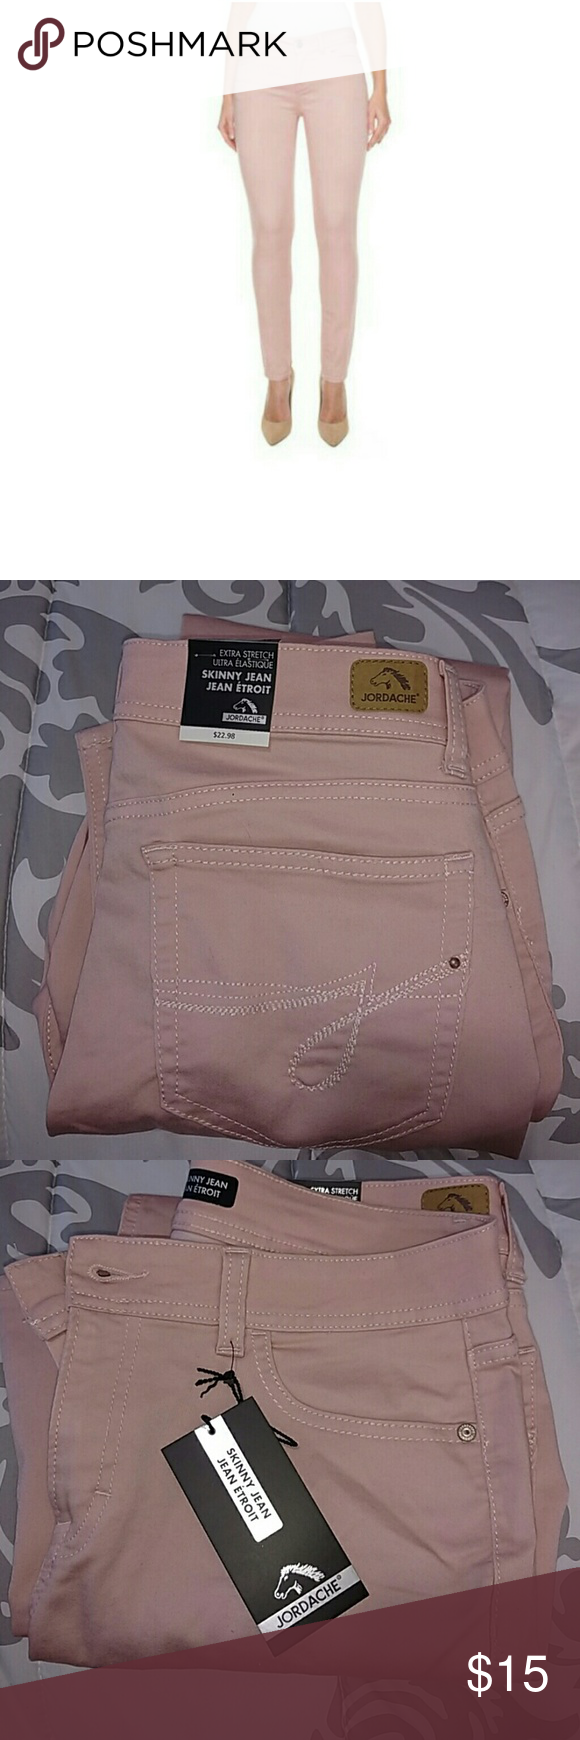 Jordache Skinny Jeans Rose colored skinny jeans. Brand new, never worn! Size 12 Regular Jordache Jeans Skinny